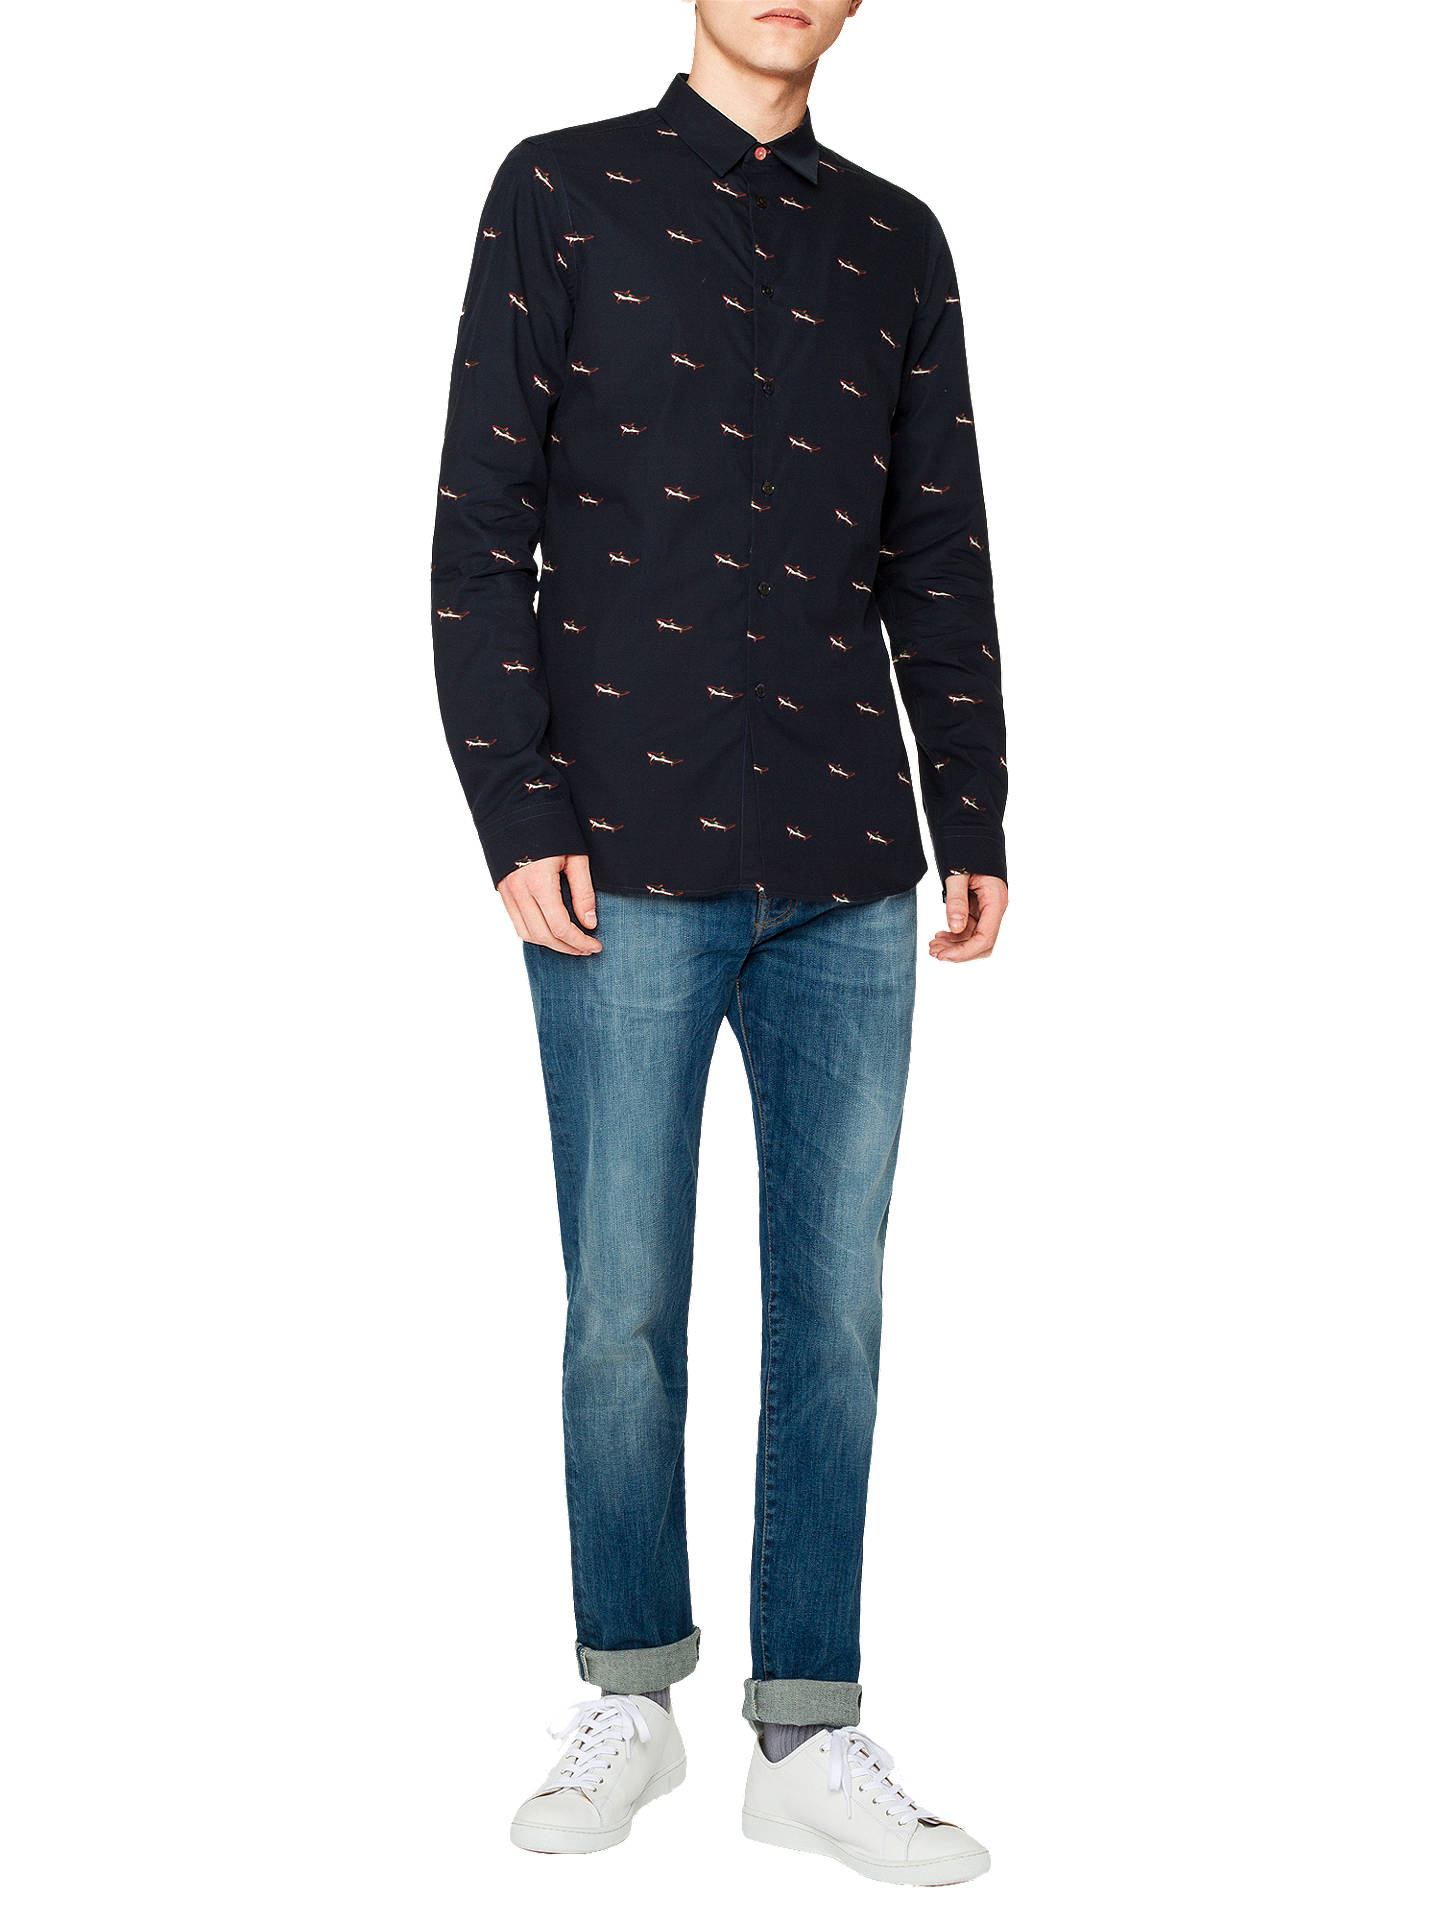 Buy PS Paul Smith Shark Tailored Fit Mens Shirt, Navy, M Online at johnlewis.com